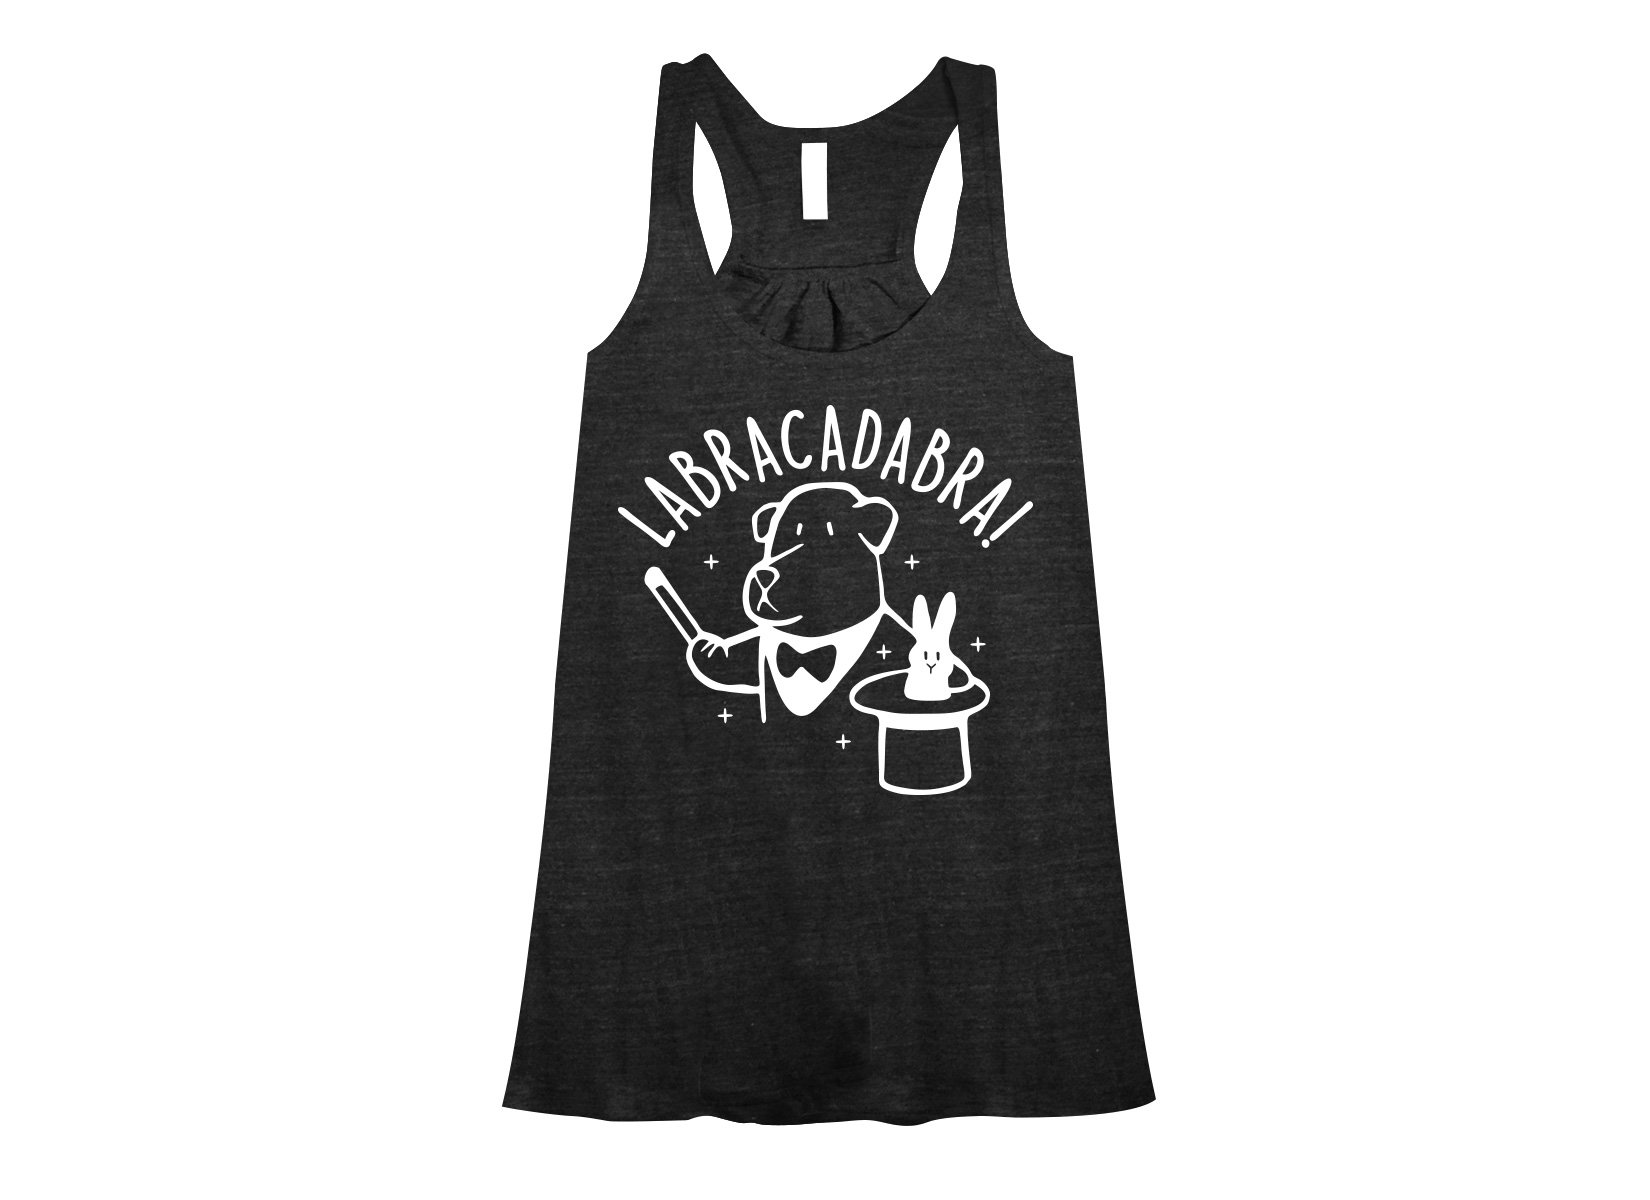 Labracadabra on Womens Tanks T-Shirt